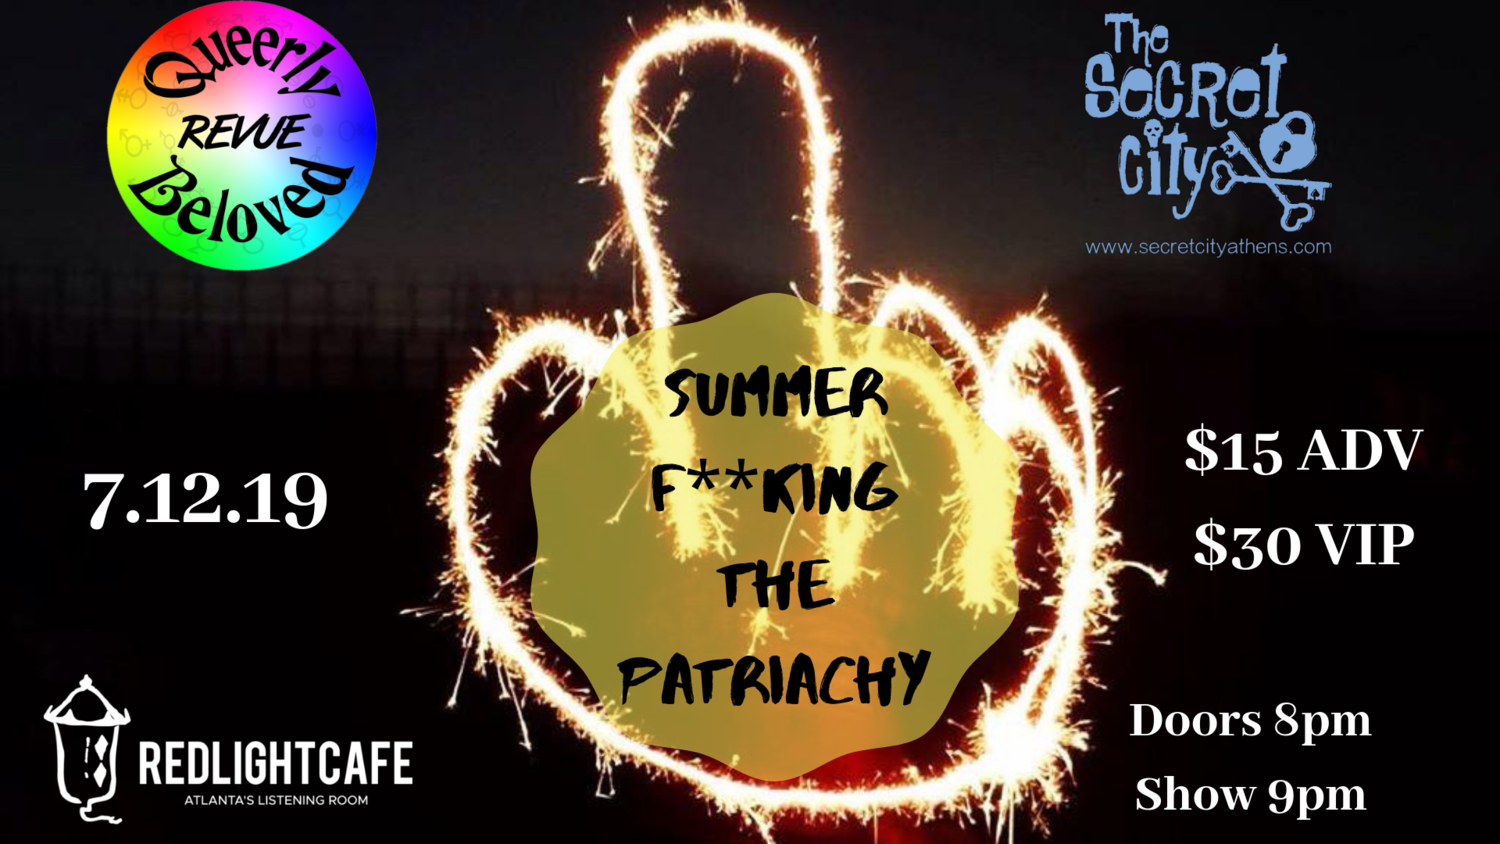 Queerly Beloved Revue And Secret City Present: Summer F**king the Patriarchy — July 12, 2019 — Red Light Café, Atlanta, GA